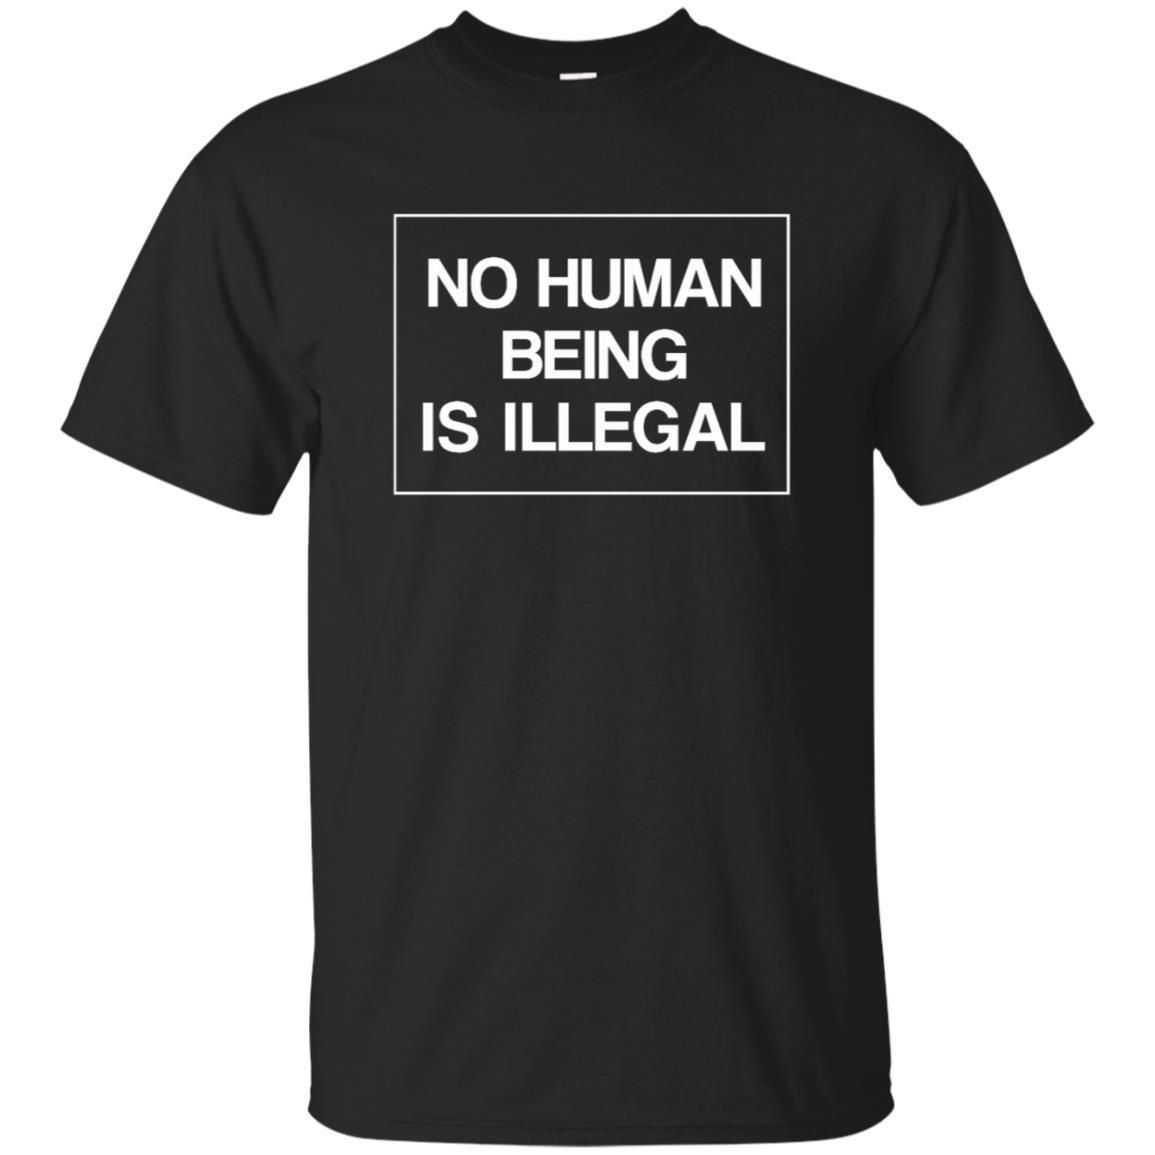 No Human Being Is Illegal Unisex Short Sleeve